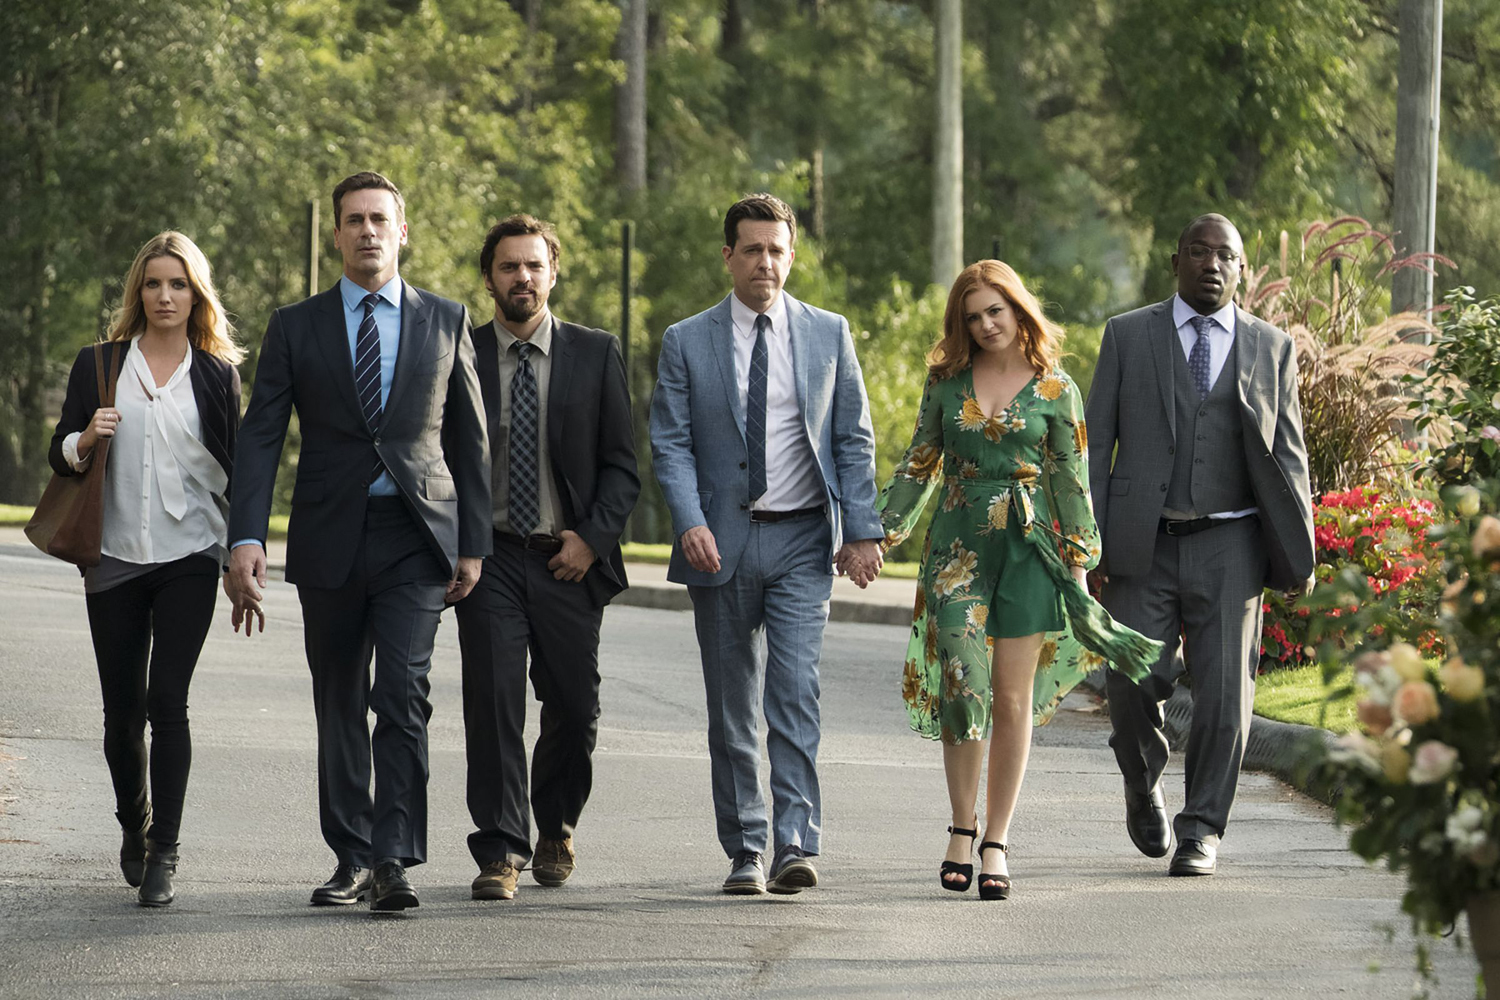 Isla Fisher, Jon Hamm, Ed Helms, Annabelle Wallis, Jake Johnson